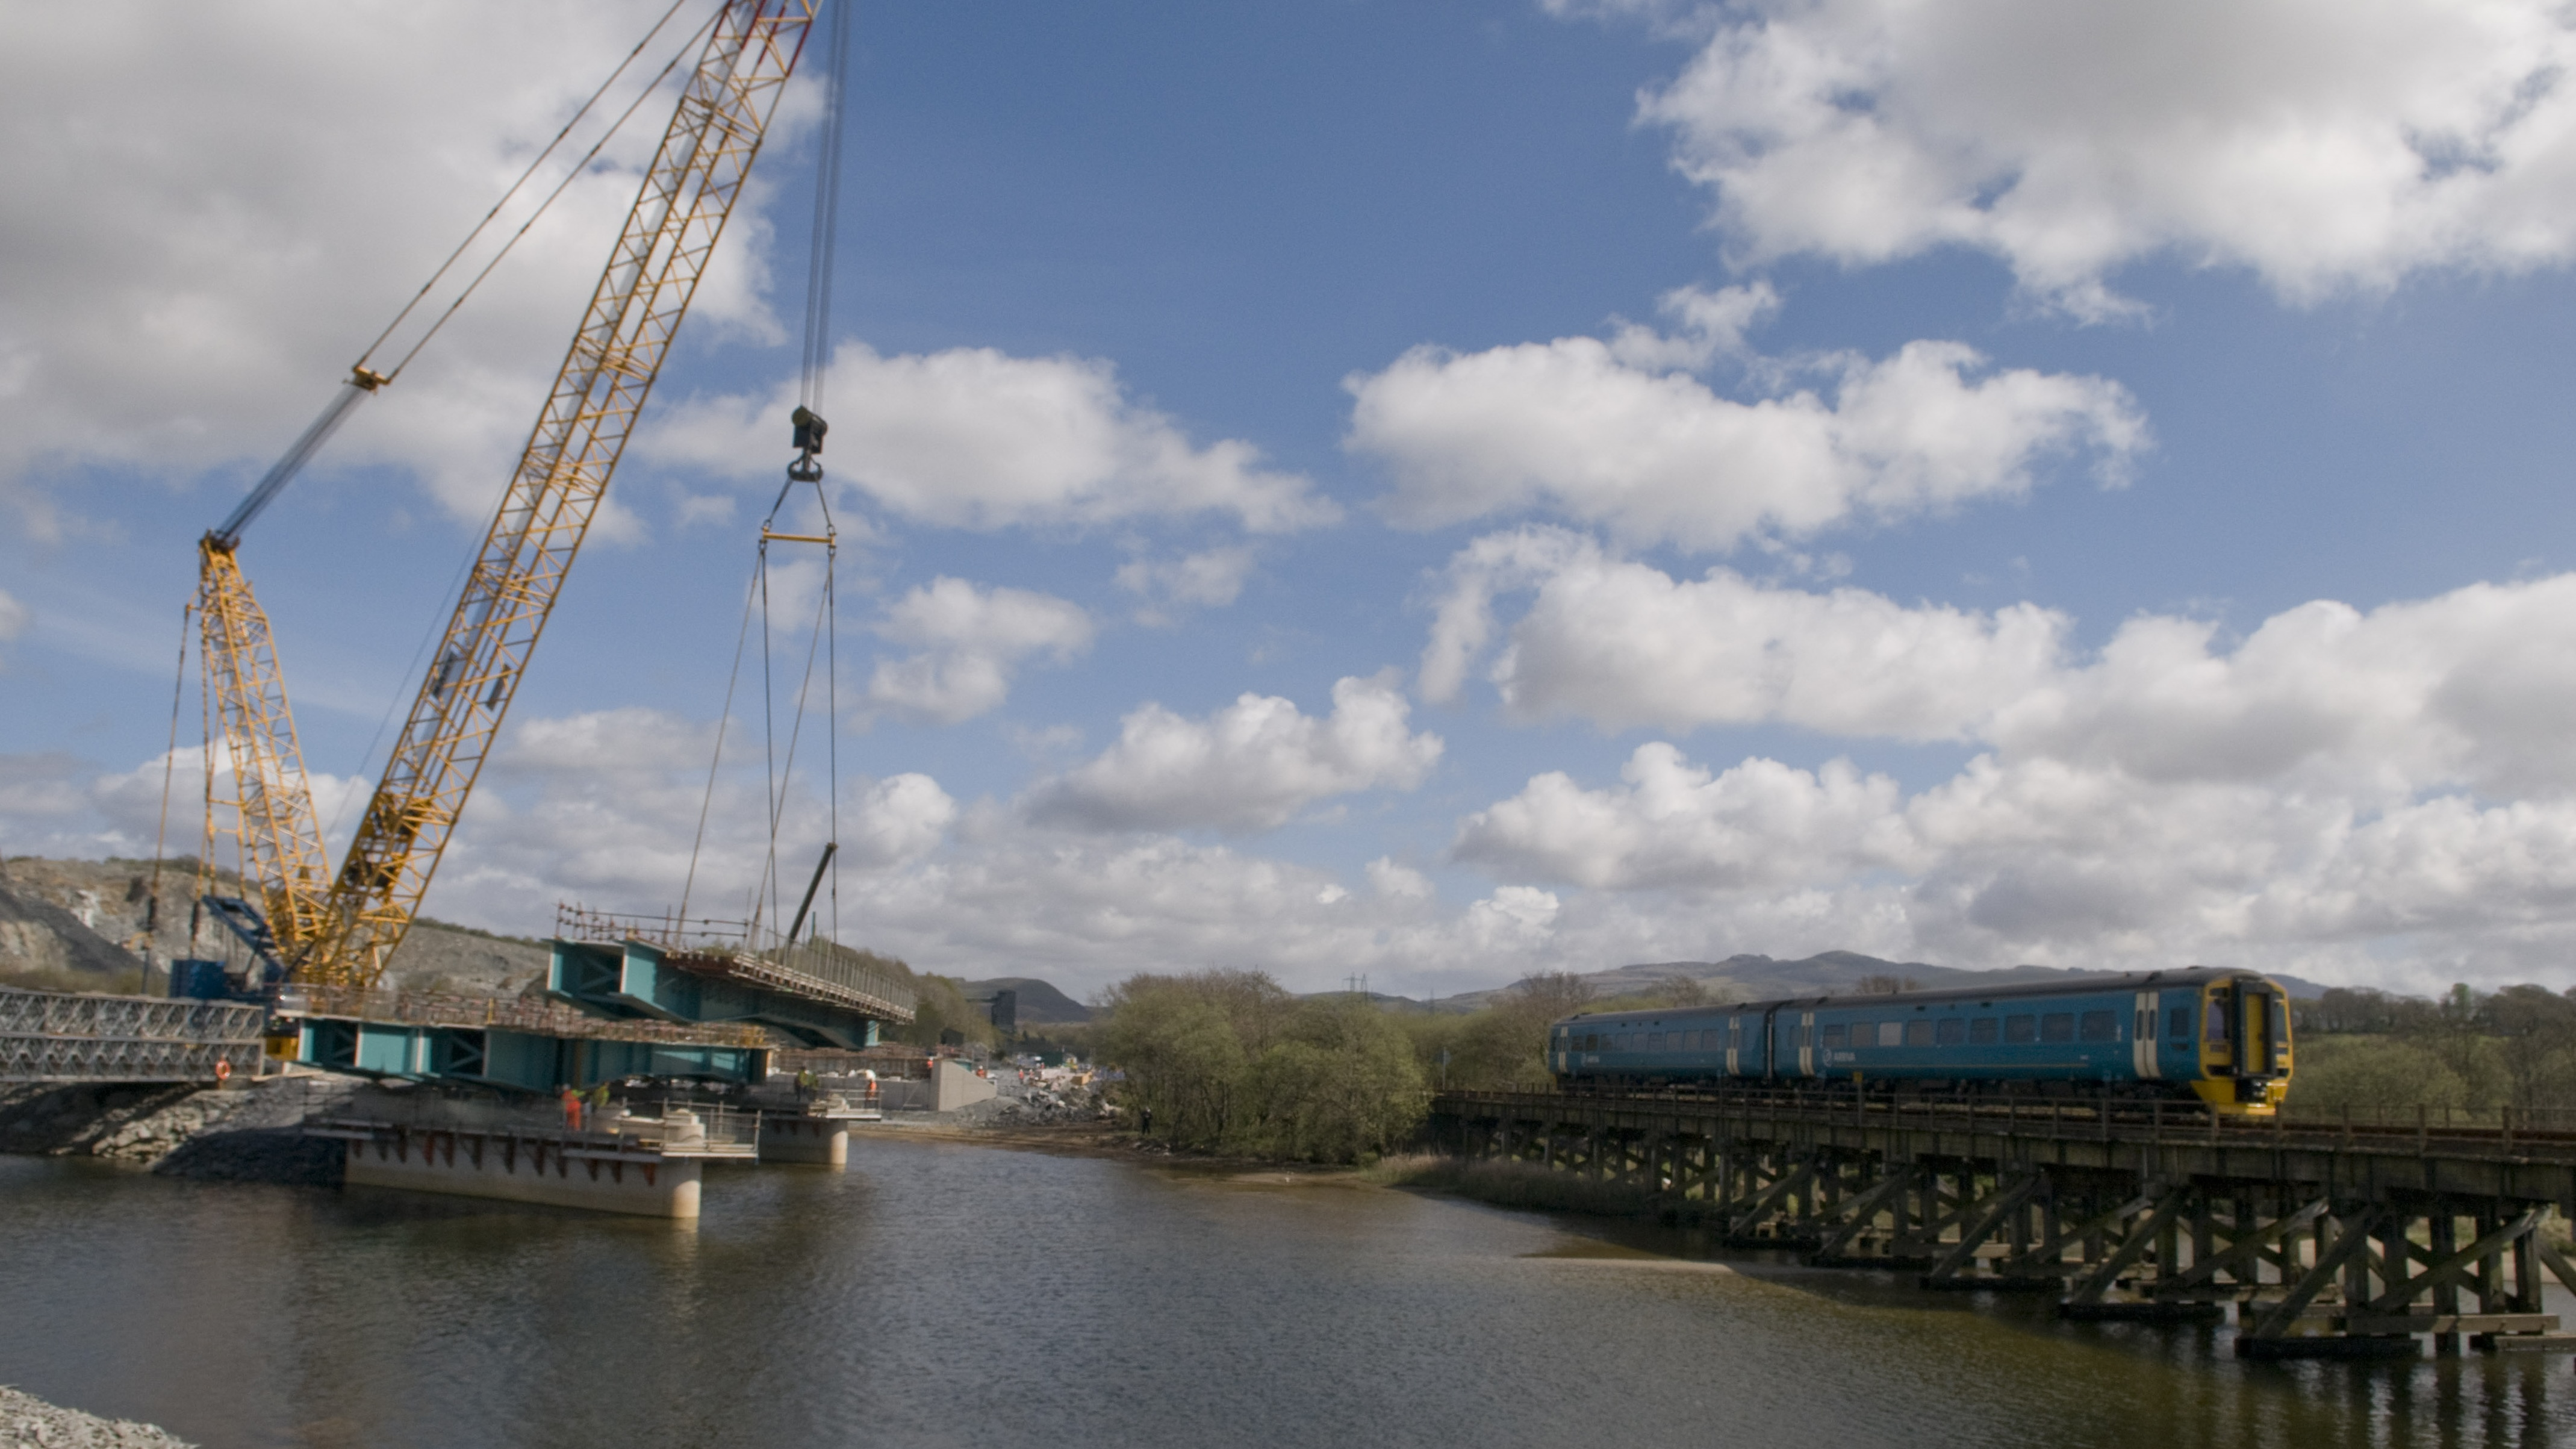 Glaslyn Bridge construction, Bailey Bridge and Cambrian Coast mainline